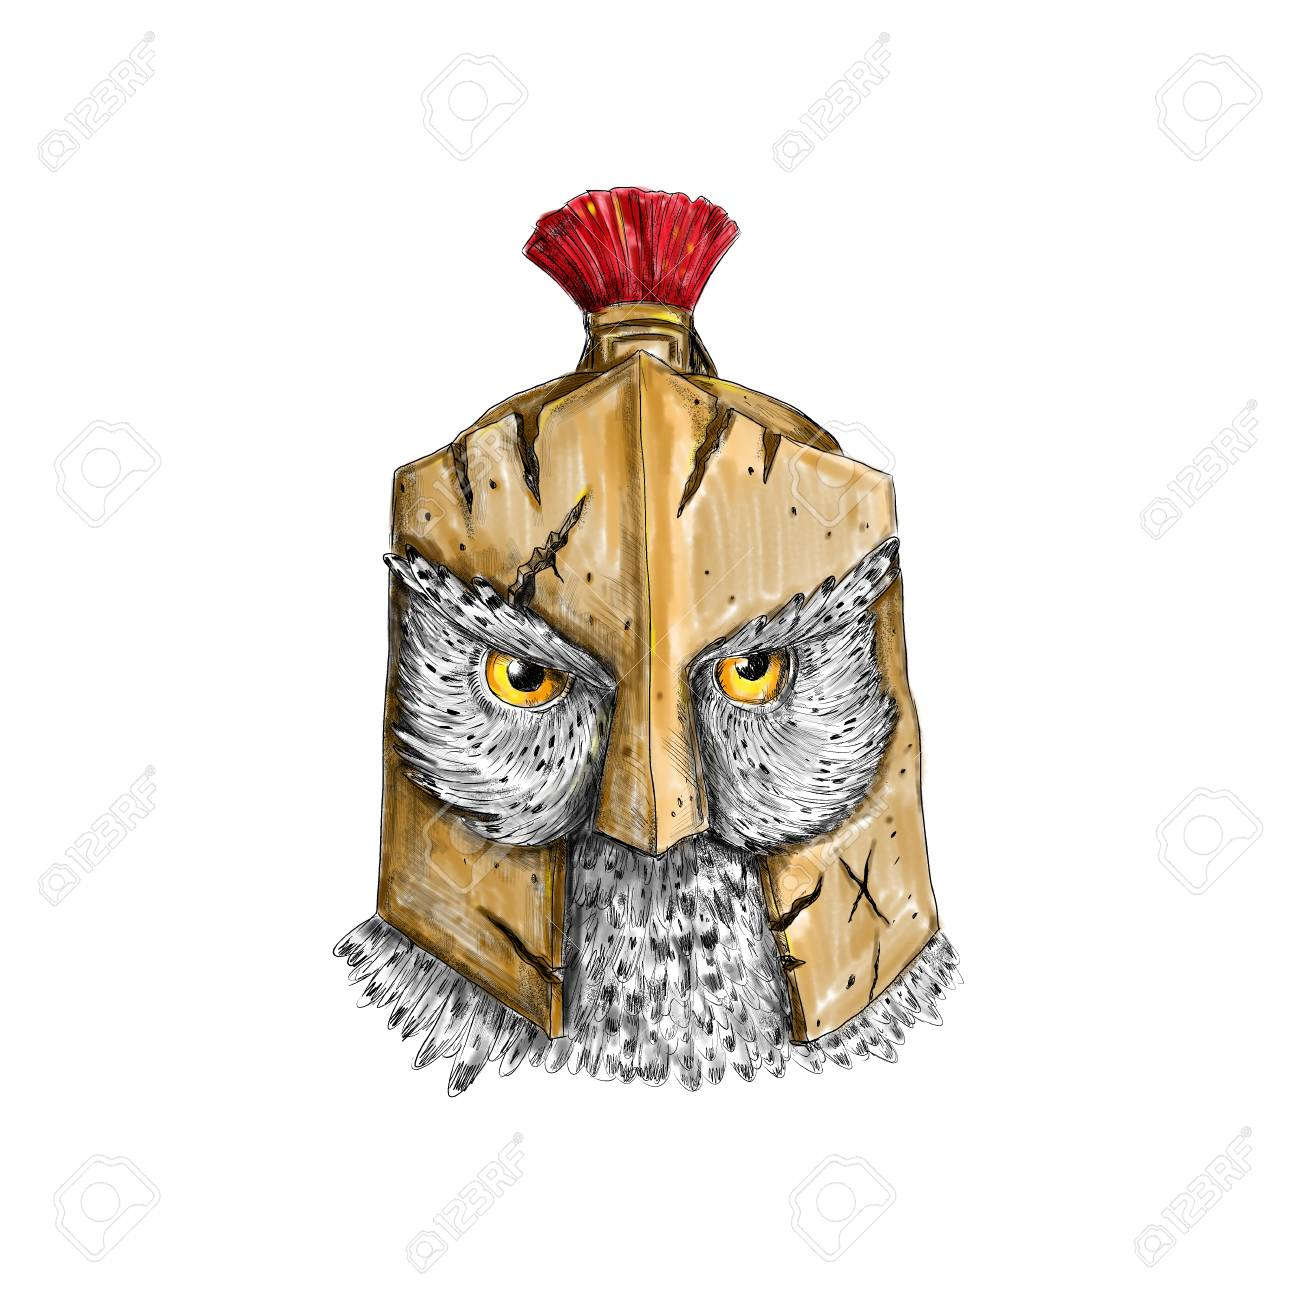 Tattoo Style Illustration Of An Owl Wearing A Spartan Helmet Stock